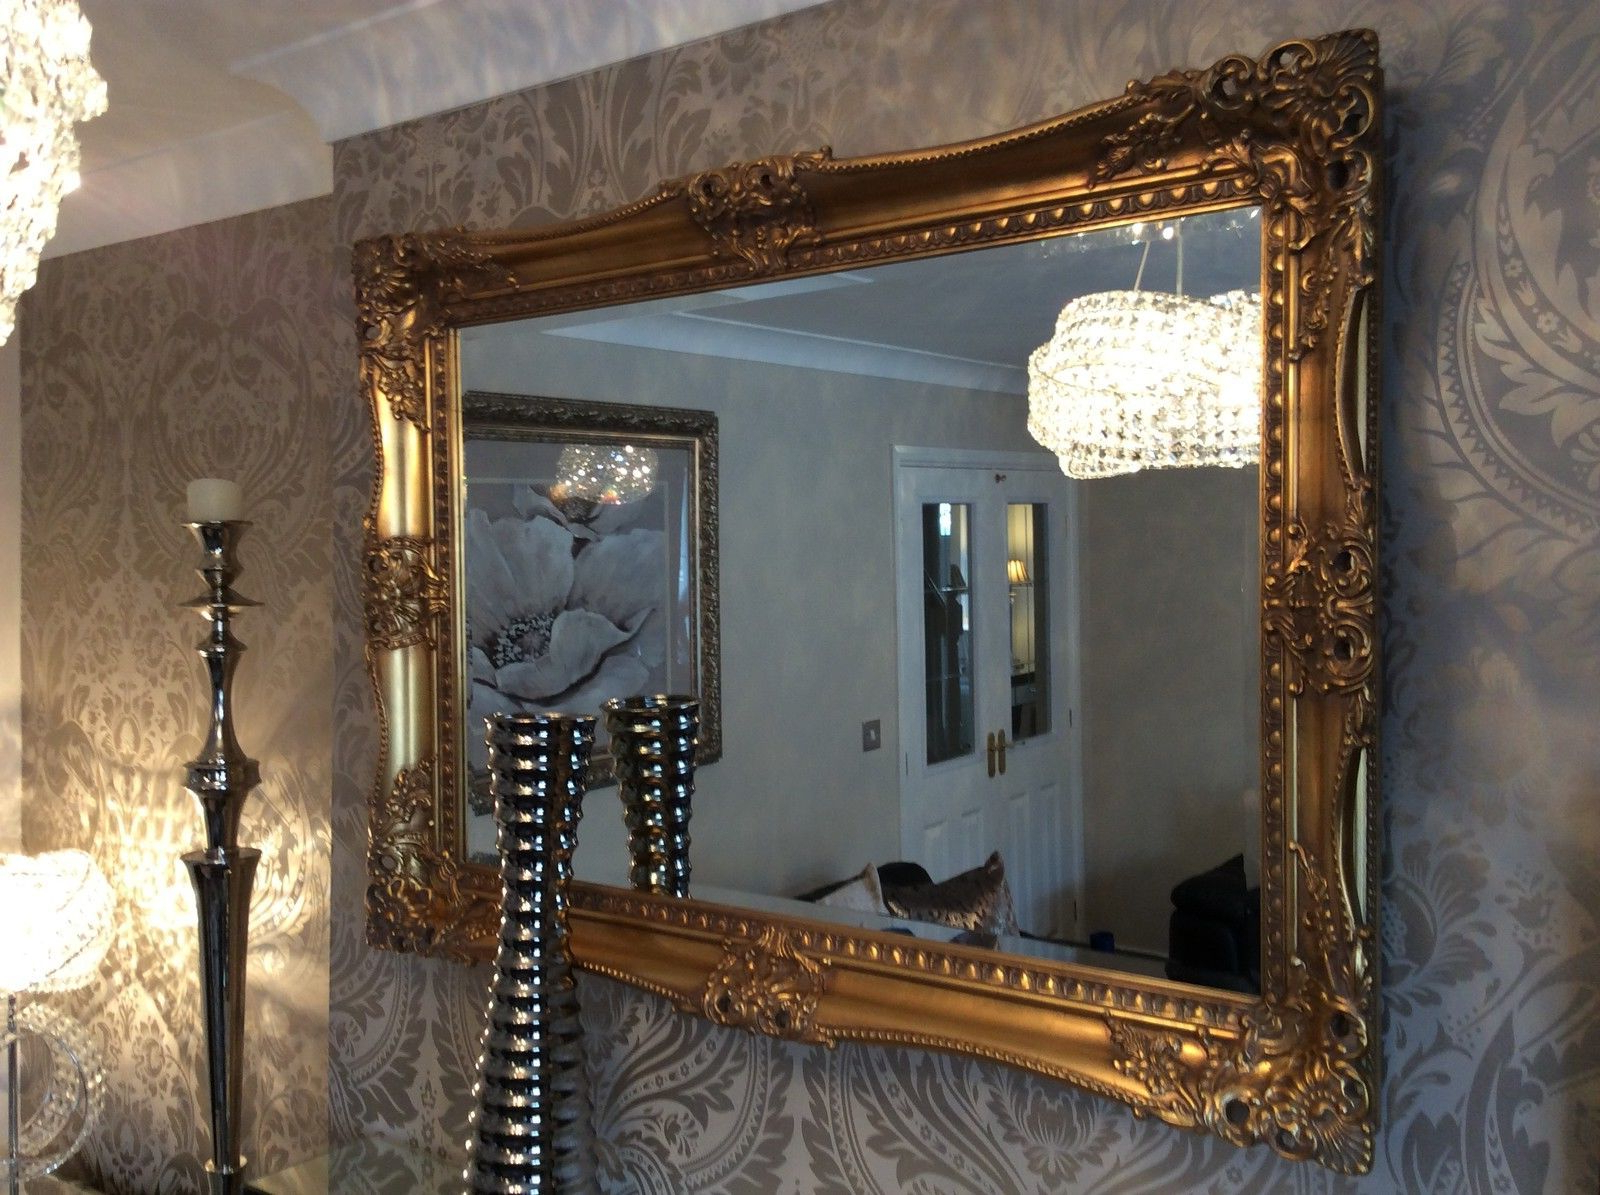 X Large Antique Gold Shabby Chic Ornate Decorative Wall Mirror Free Postage Regarding Trendy Antique Gold Wall Mirrors (Gallery 10 of 20)